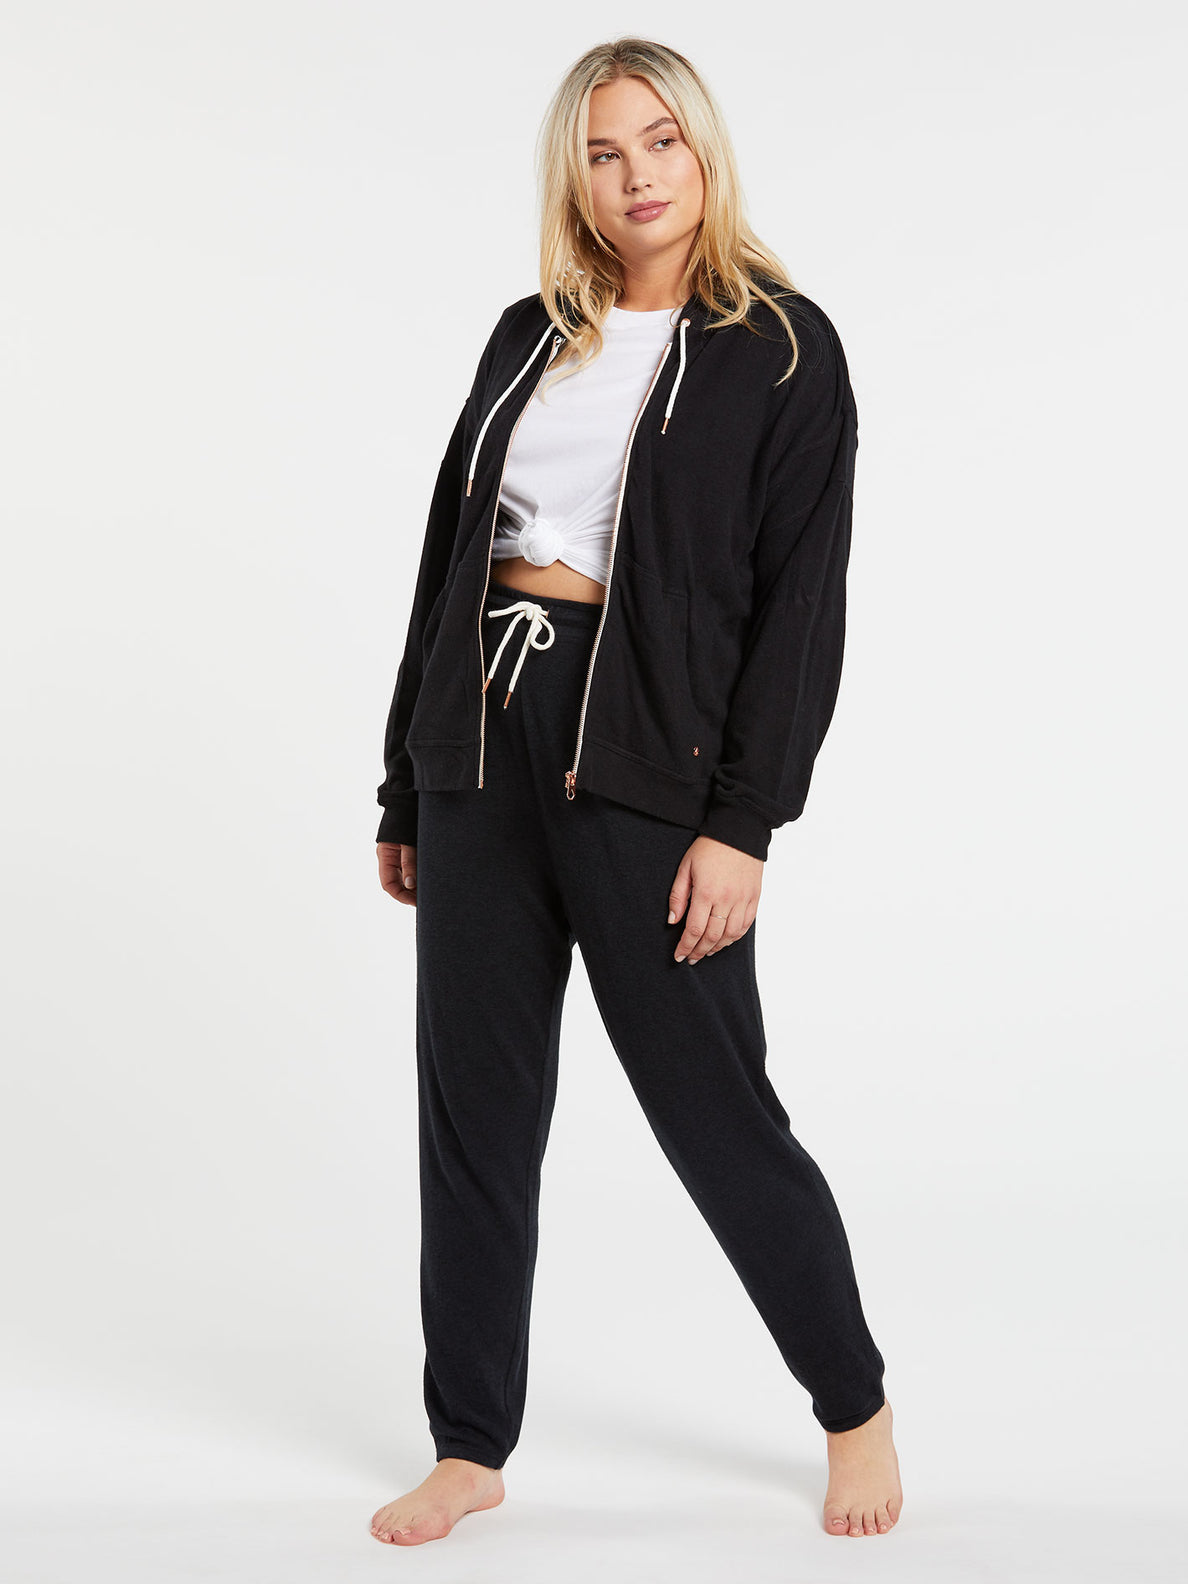 Lived In Lounge Zip Fleece - Black (B3111802_BLK) [12]